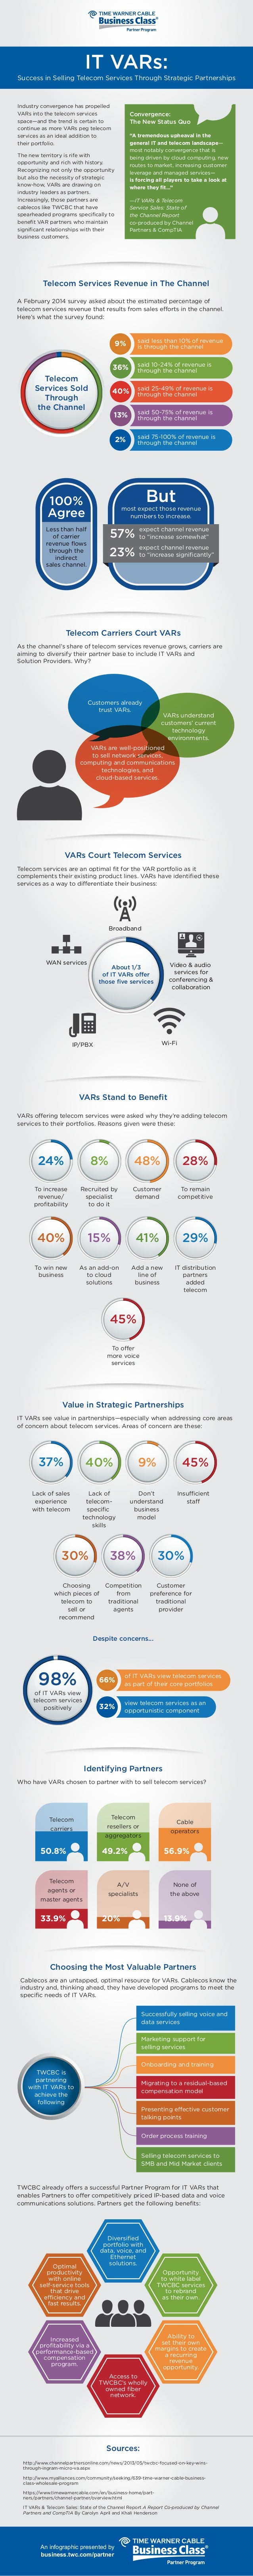 Success in Selling Telecom Services Through Strategic Partnerships IT VARs: Industry convergence has propelled VARs into t...